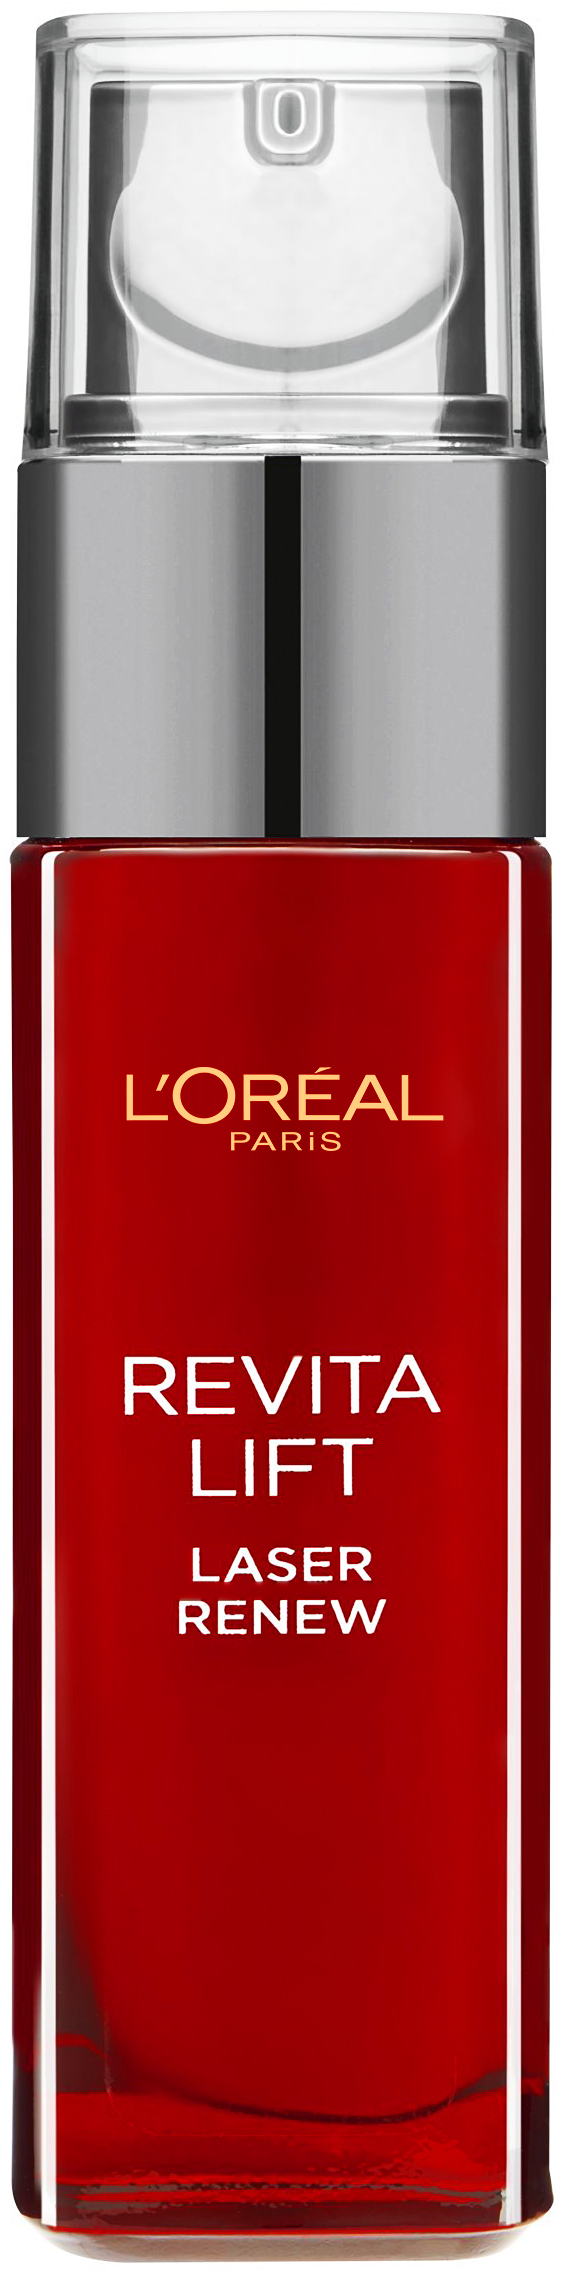 סרום רויטליפט לייזר 30 מ״ל L'Oréal Paris Revitalift Laser Renew X3